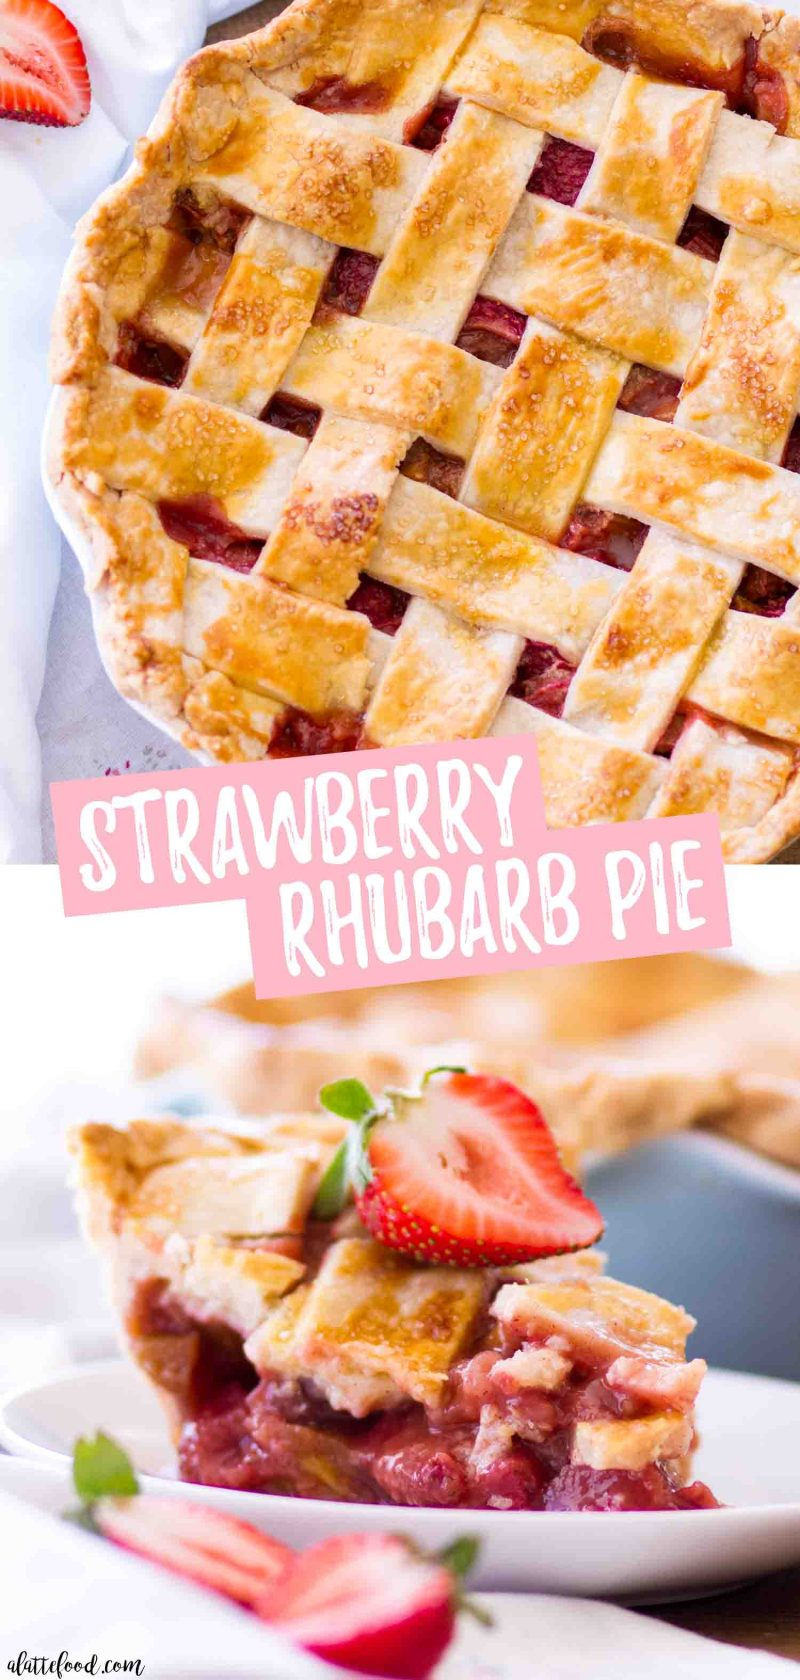 The best strawberry rhubarb pie recipe with a homemade butter pie crust